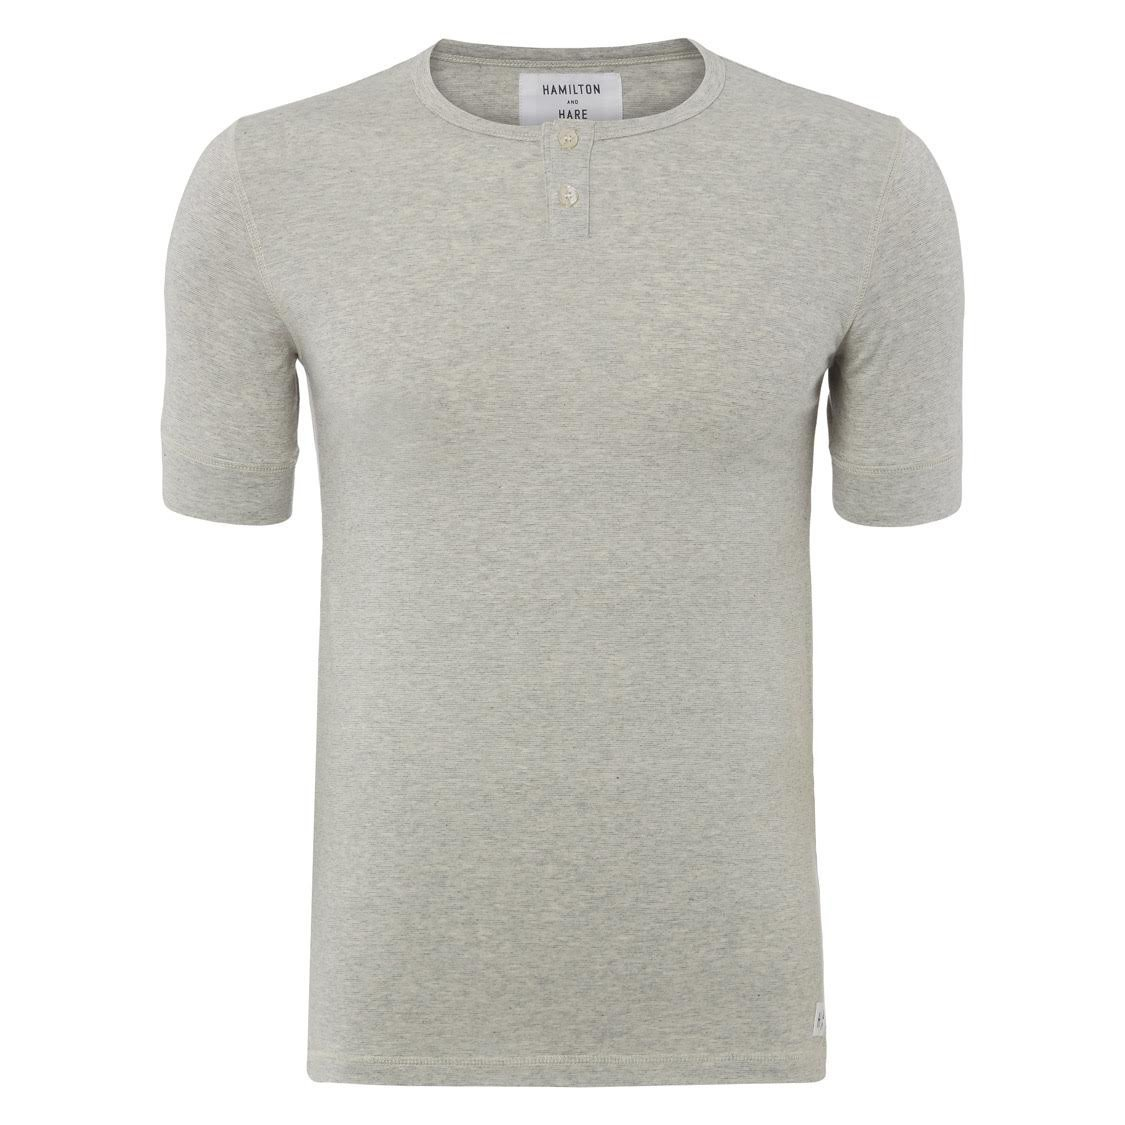 Hamilton & Hare Thermal Henley Top